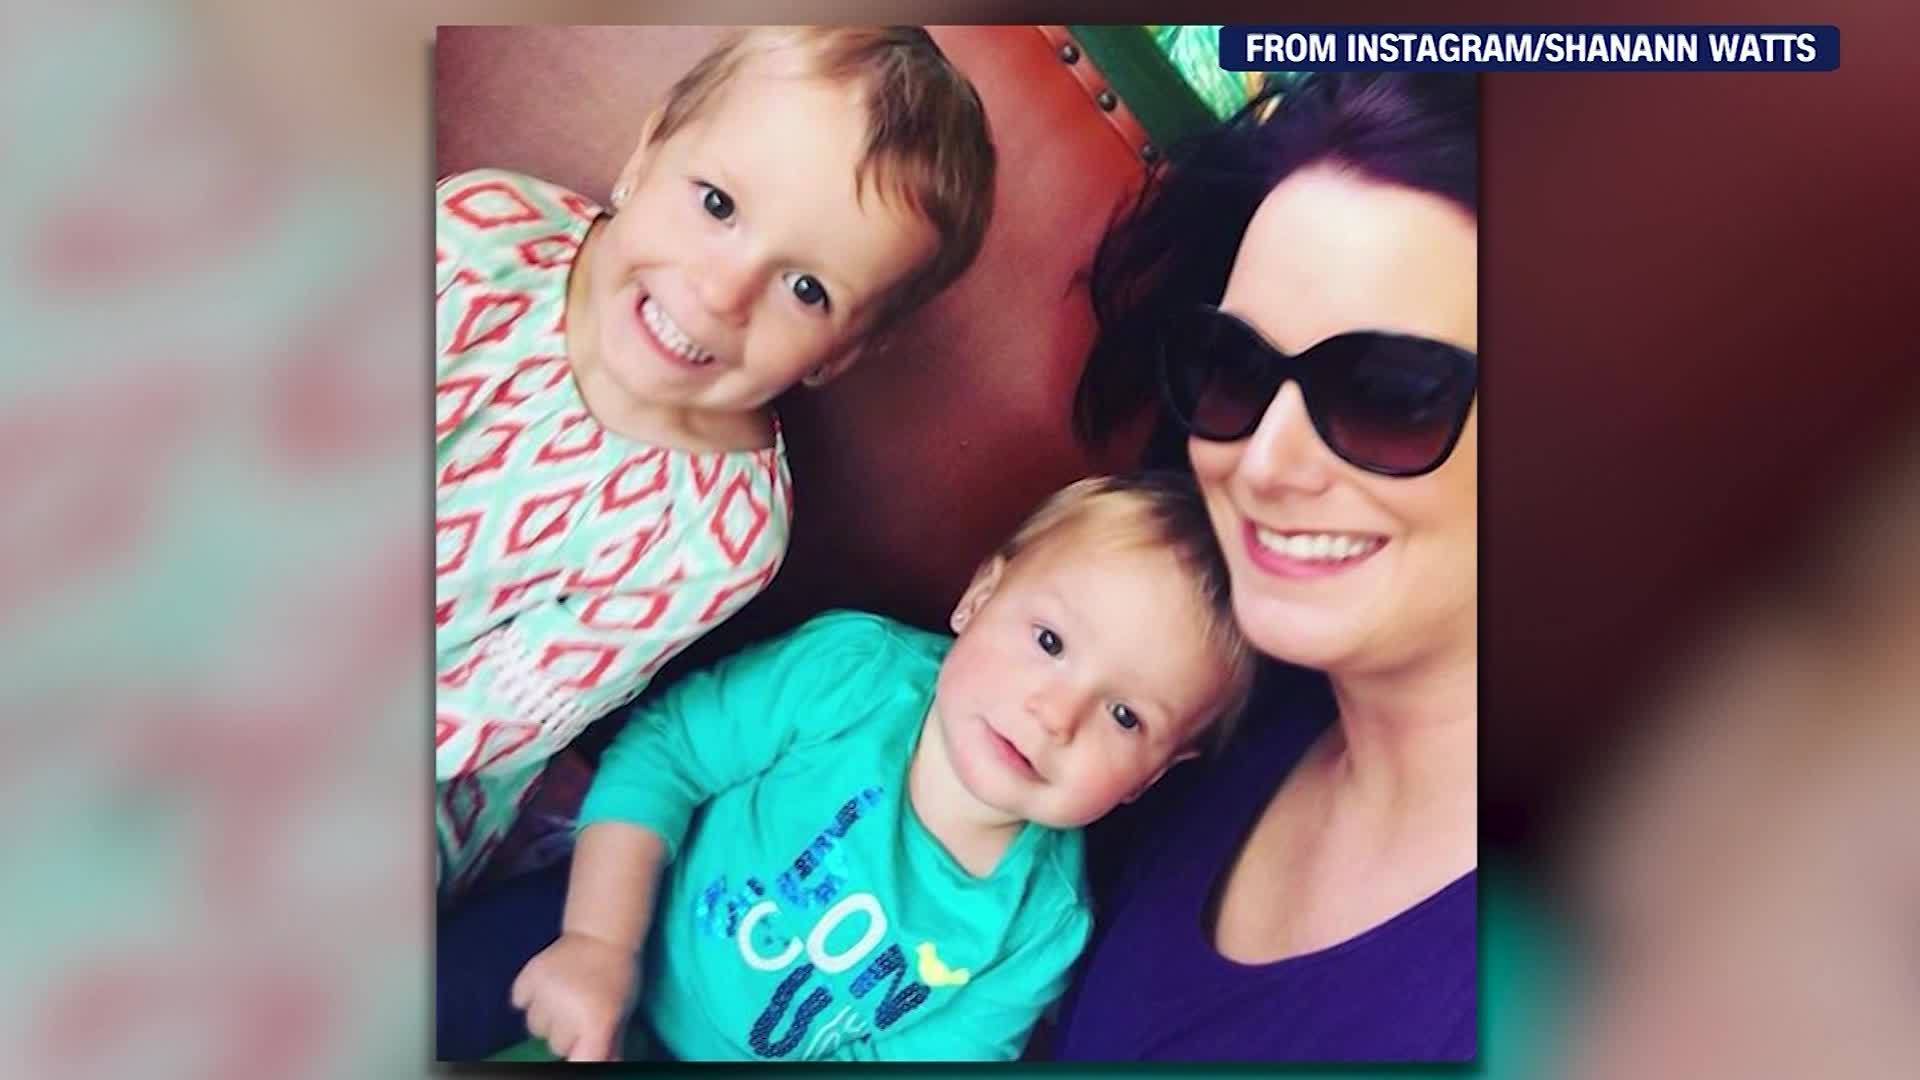 Christopher_Watts_confesses_to_killing_p_7_20181130145853